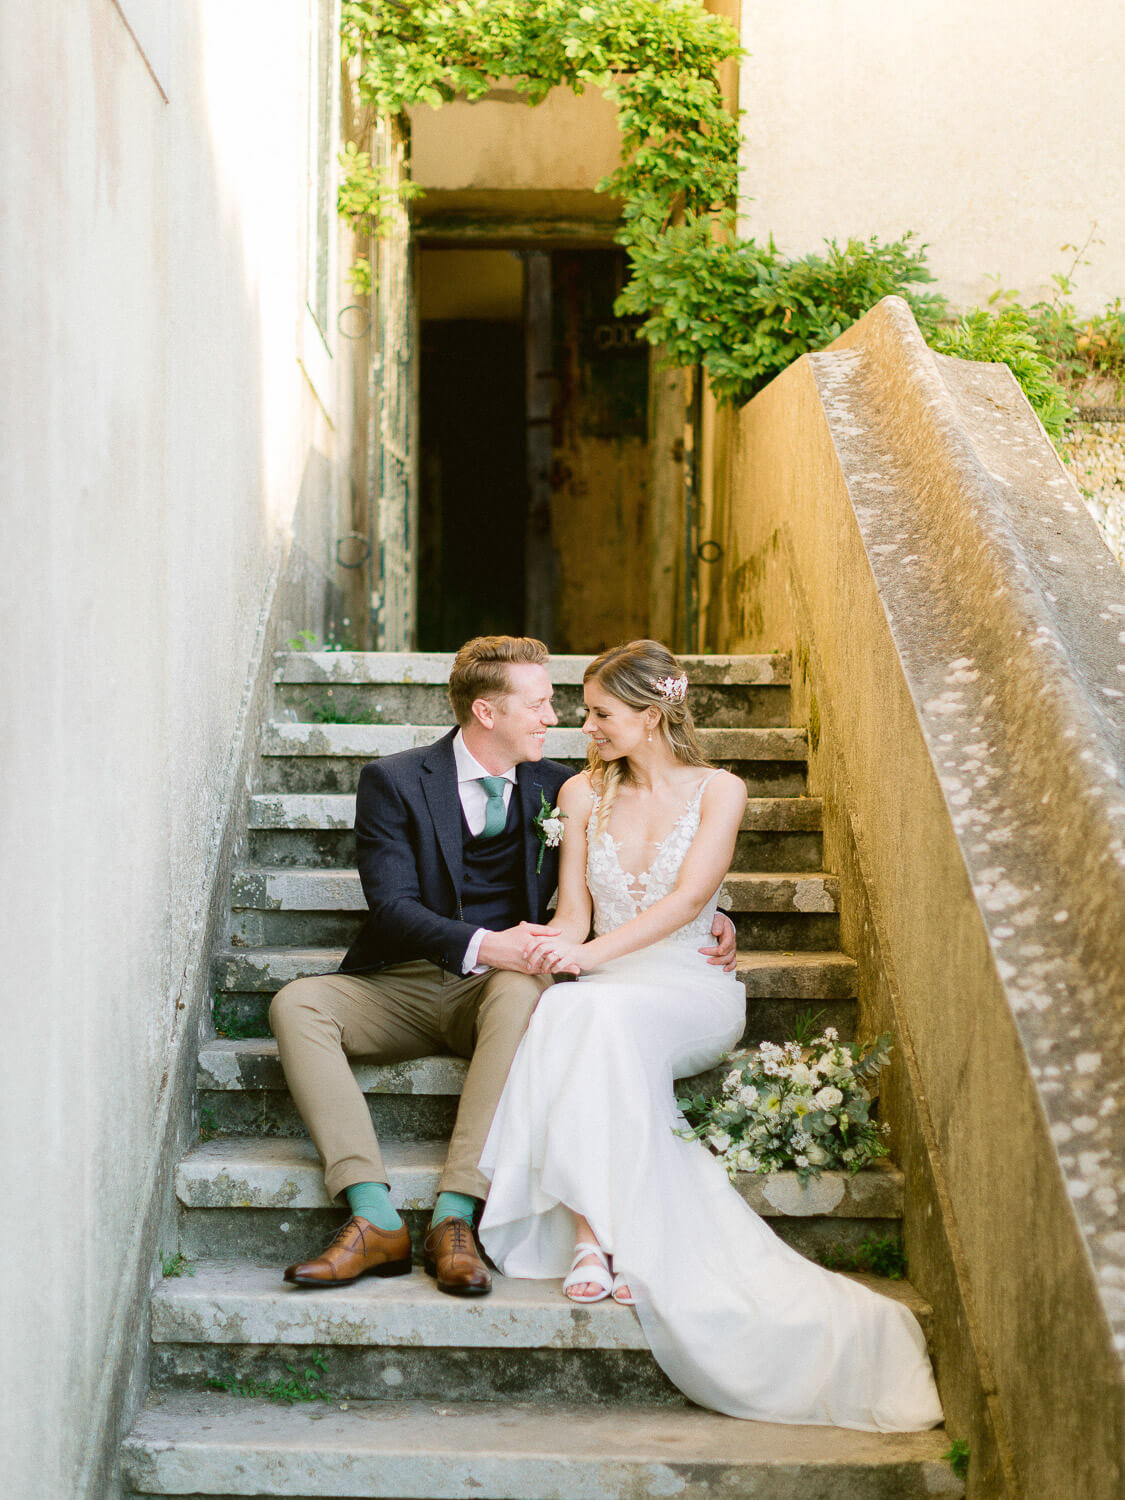 newlyweds sweet portrait on the stoop after the wedding by Portugal Wedding Photographer